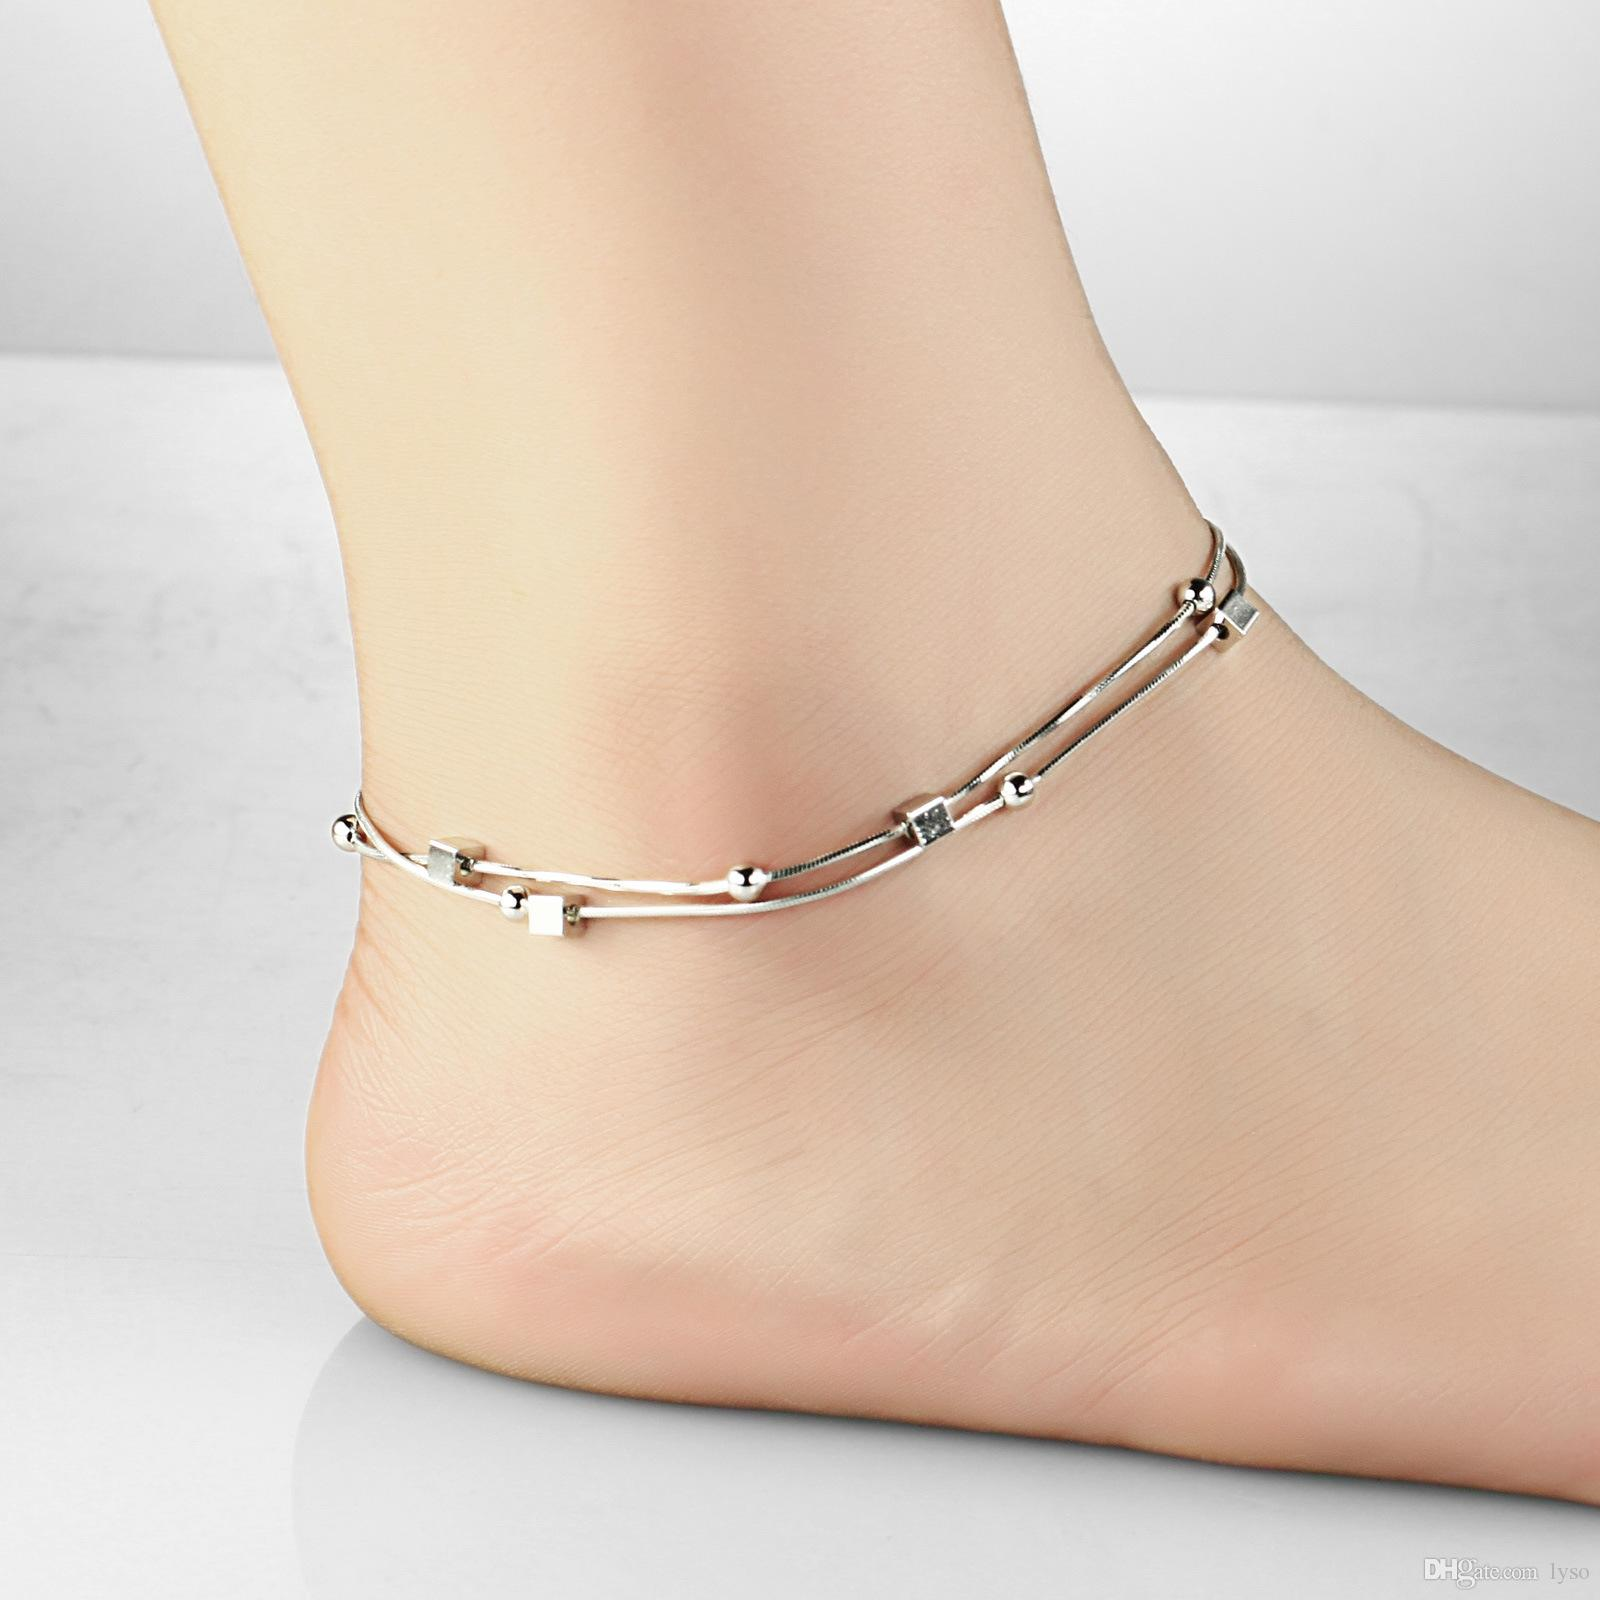 gold ankle white bijou triple anklets bracelet products chain anklet productimg collections nana finejwlry sweetheart